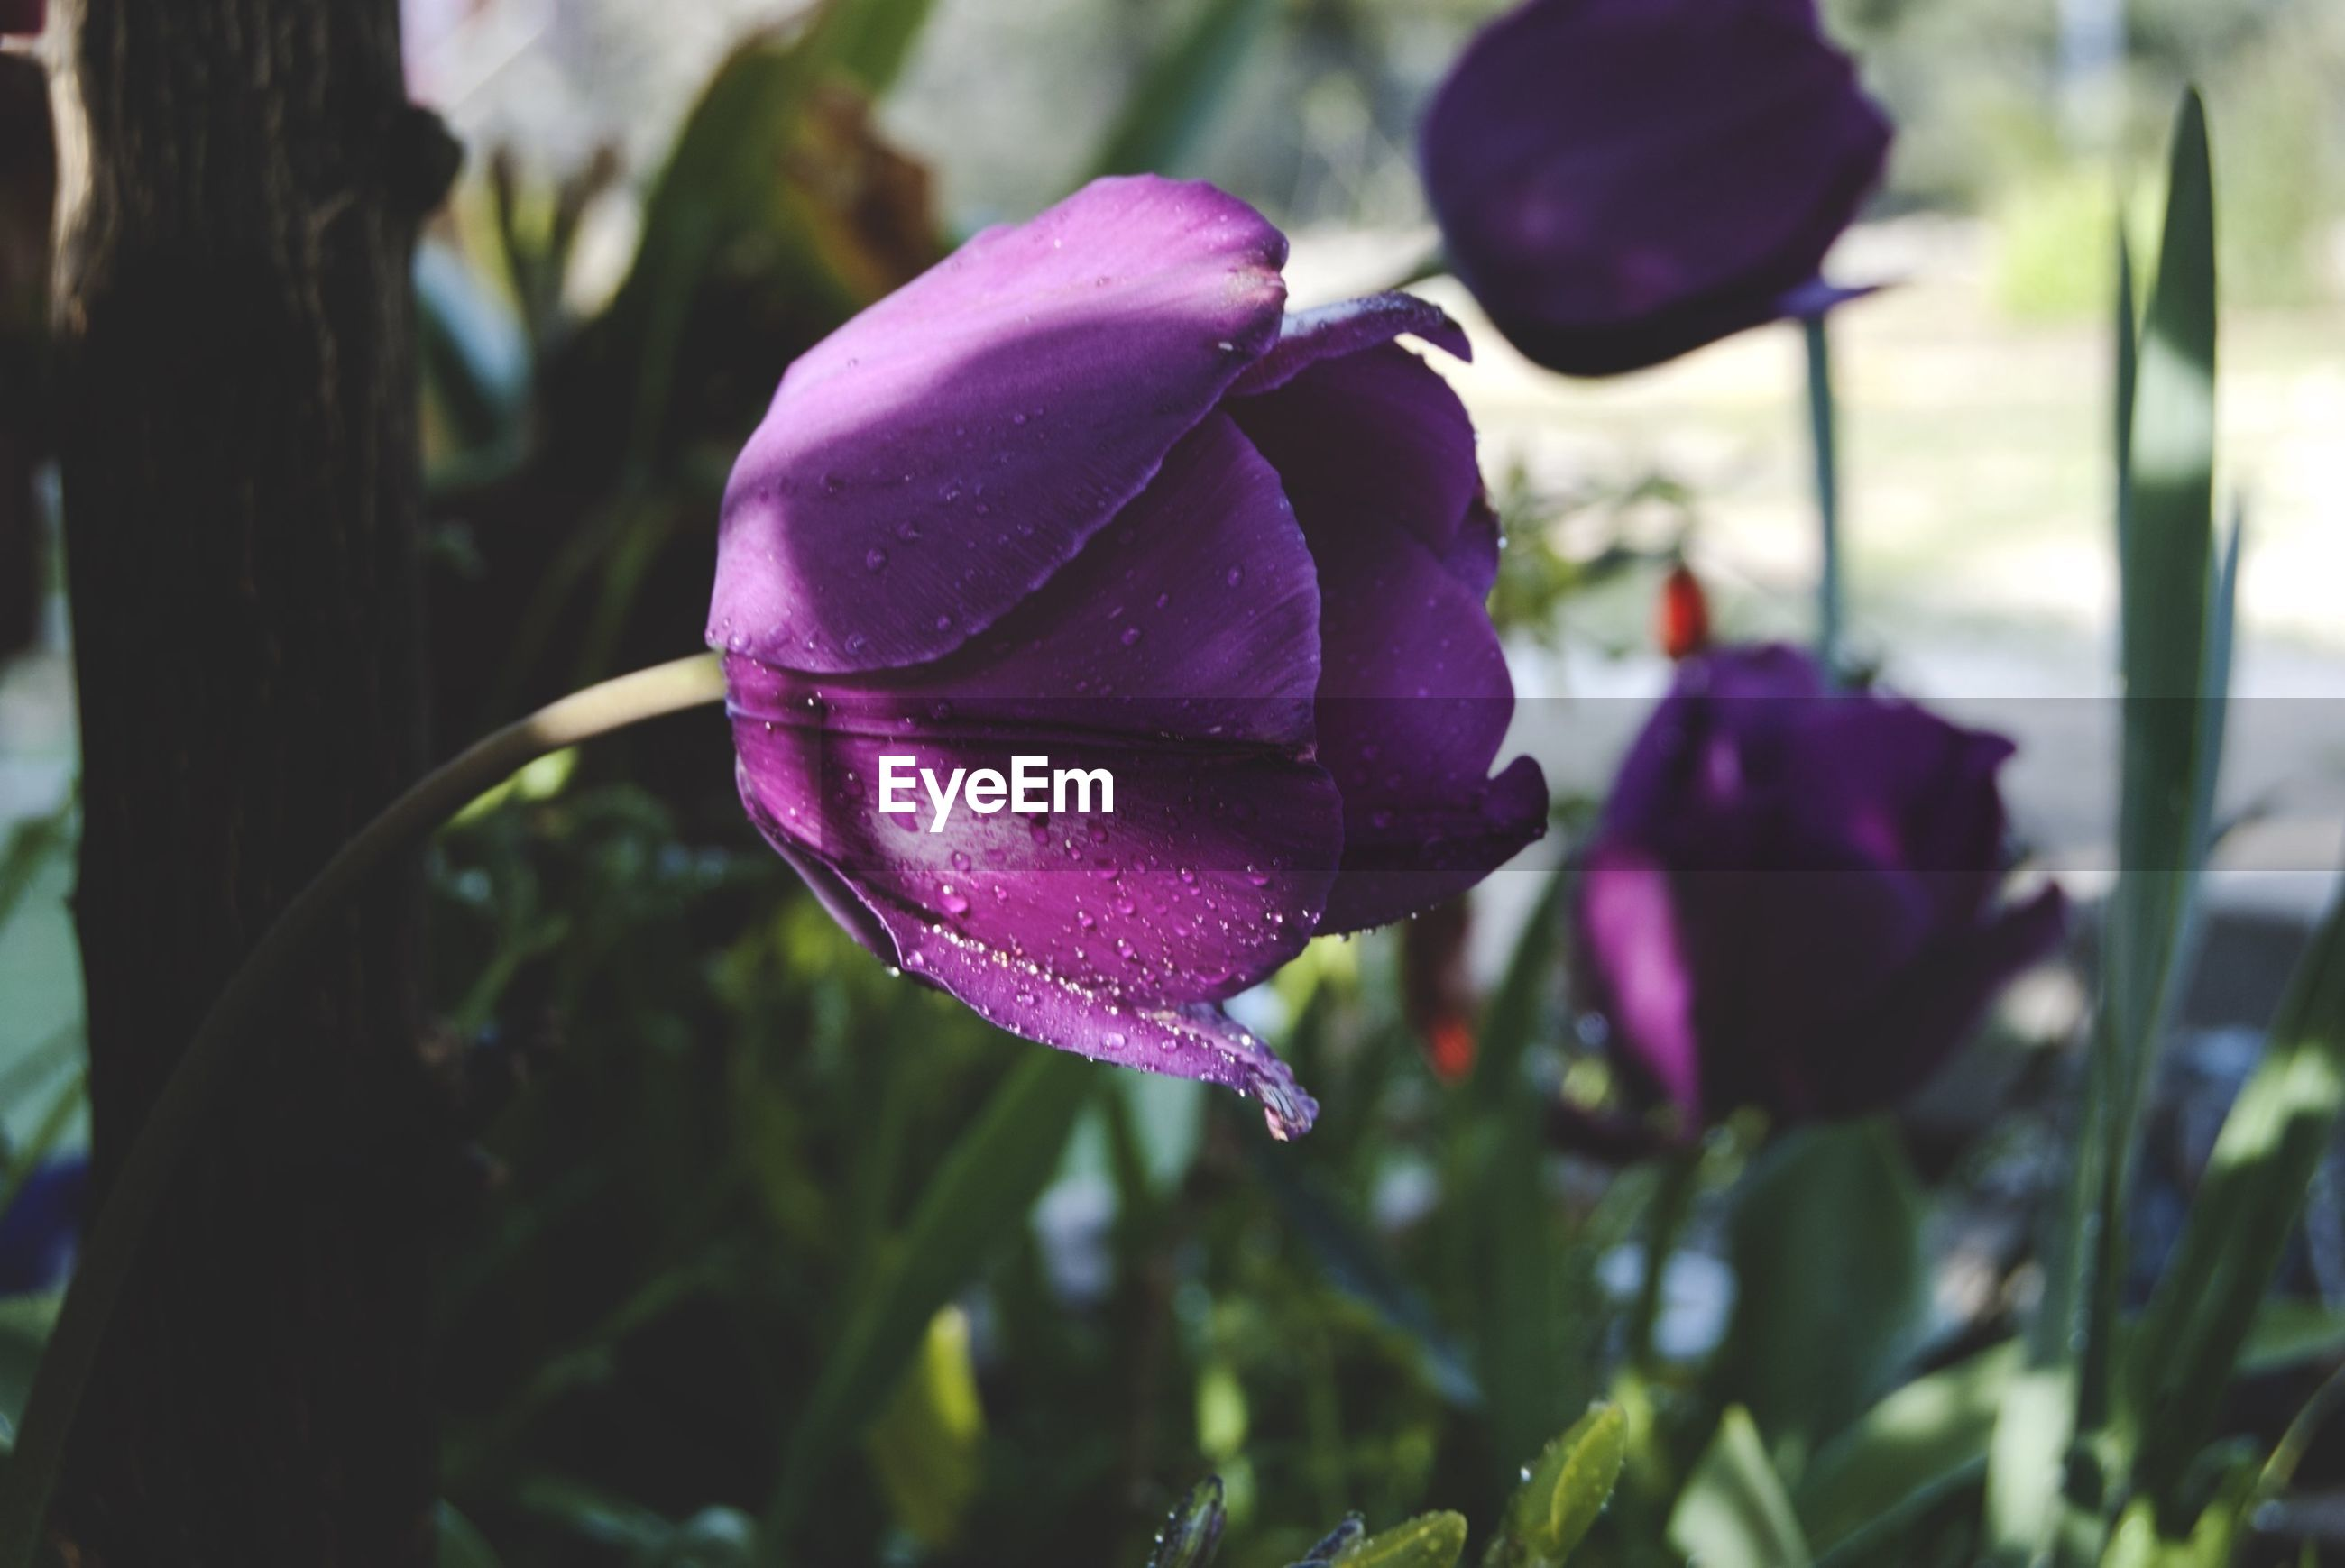 flower, petal, freshness, flower head, fragility, close-up, growth, beauty in nature, focus on foreground, purple, blooming, plant, single flower, nature, rose - flower, pink color, in bloom, drop, wet, outdoors